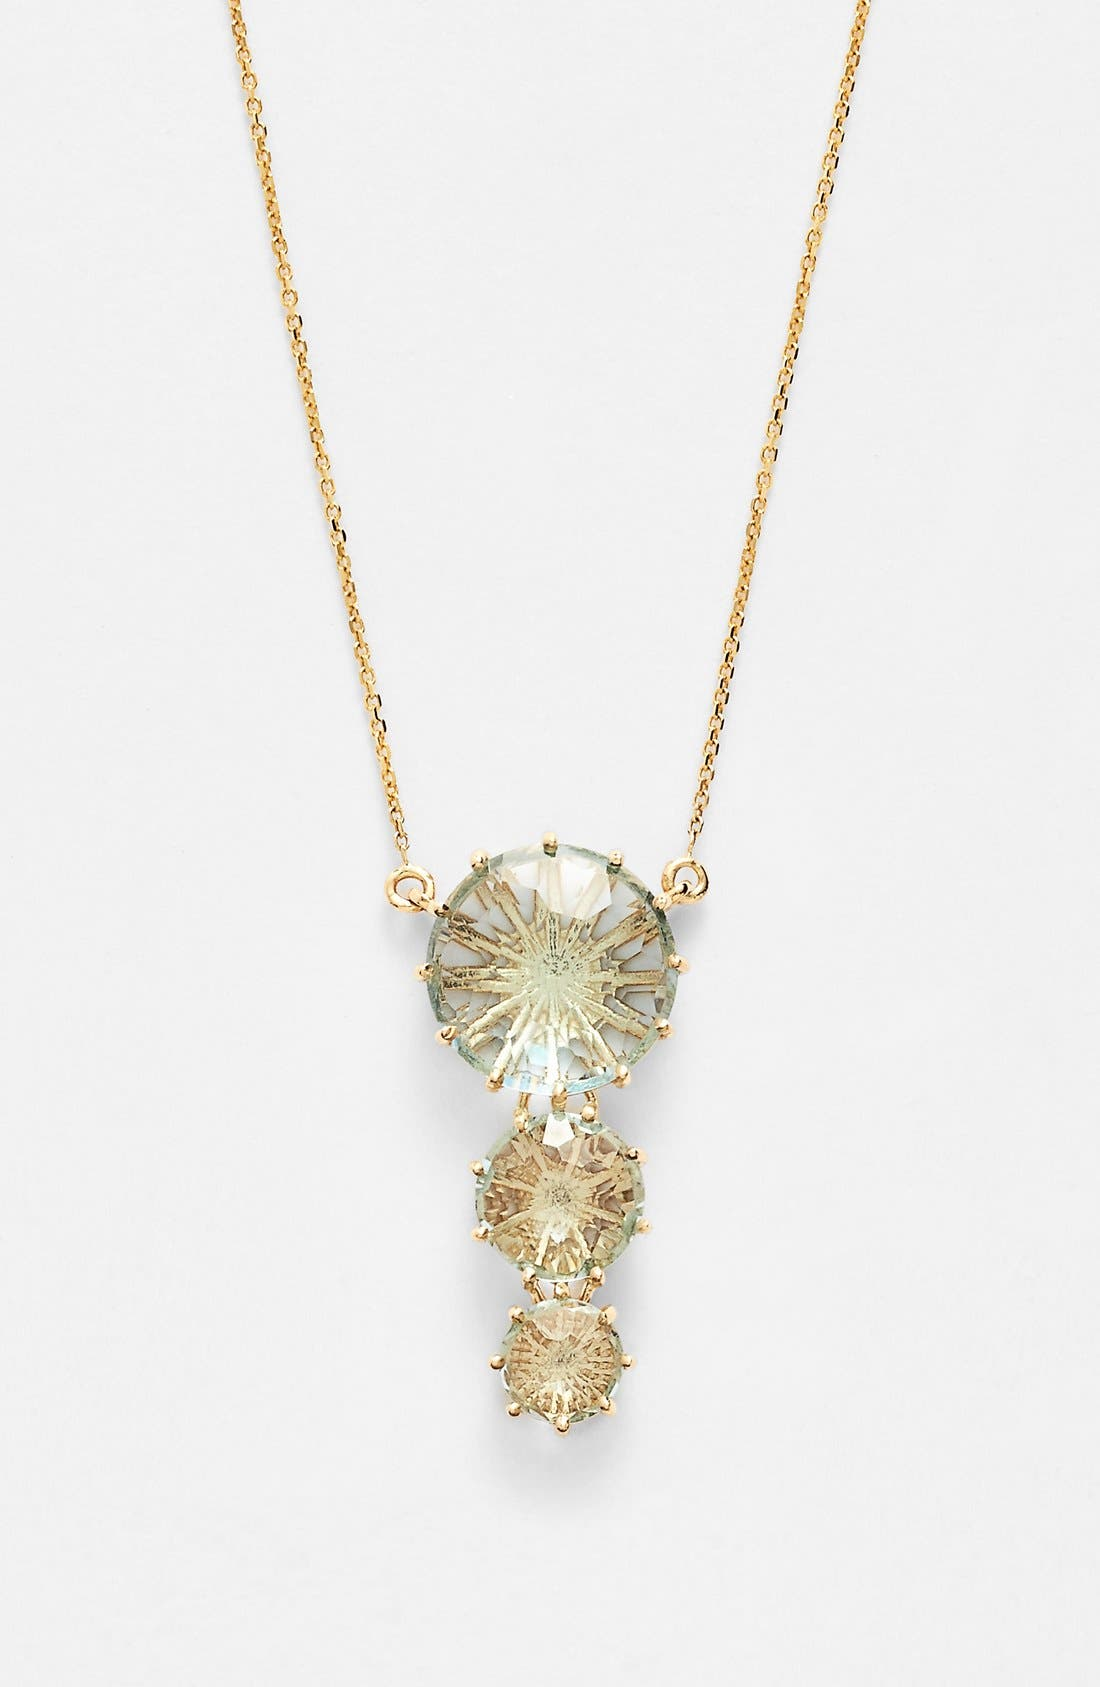 Main Image - KALAN by Suzanne Kalan Stone Pendant Necklace